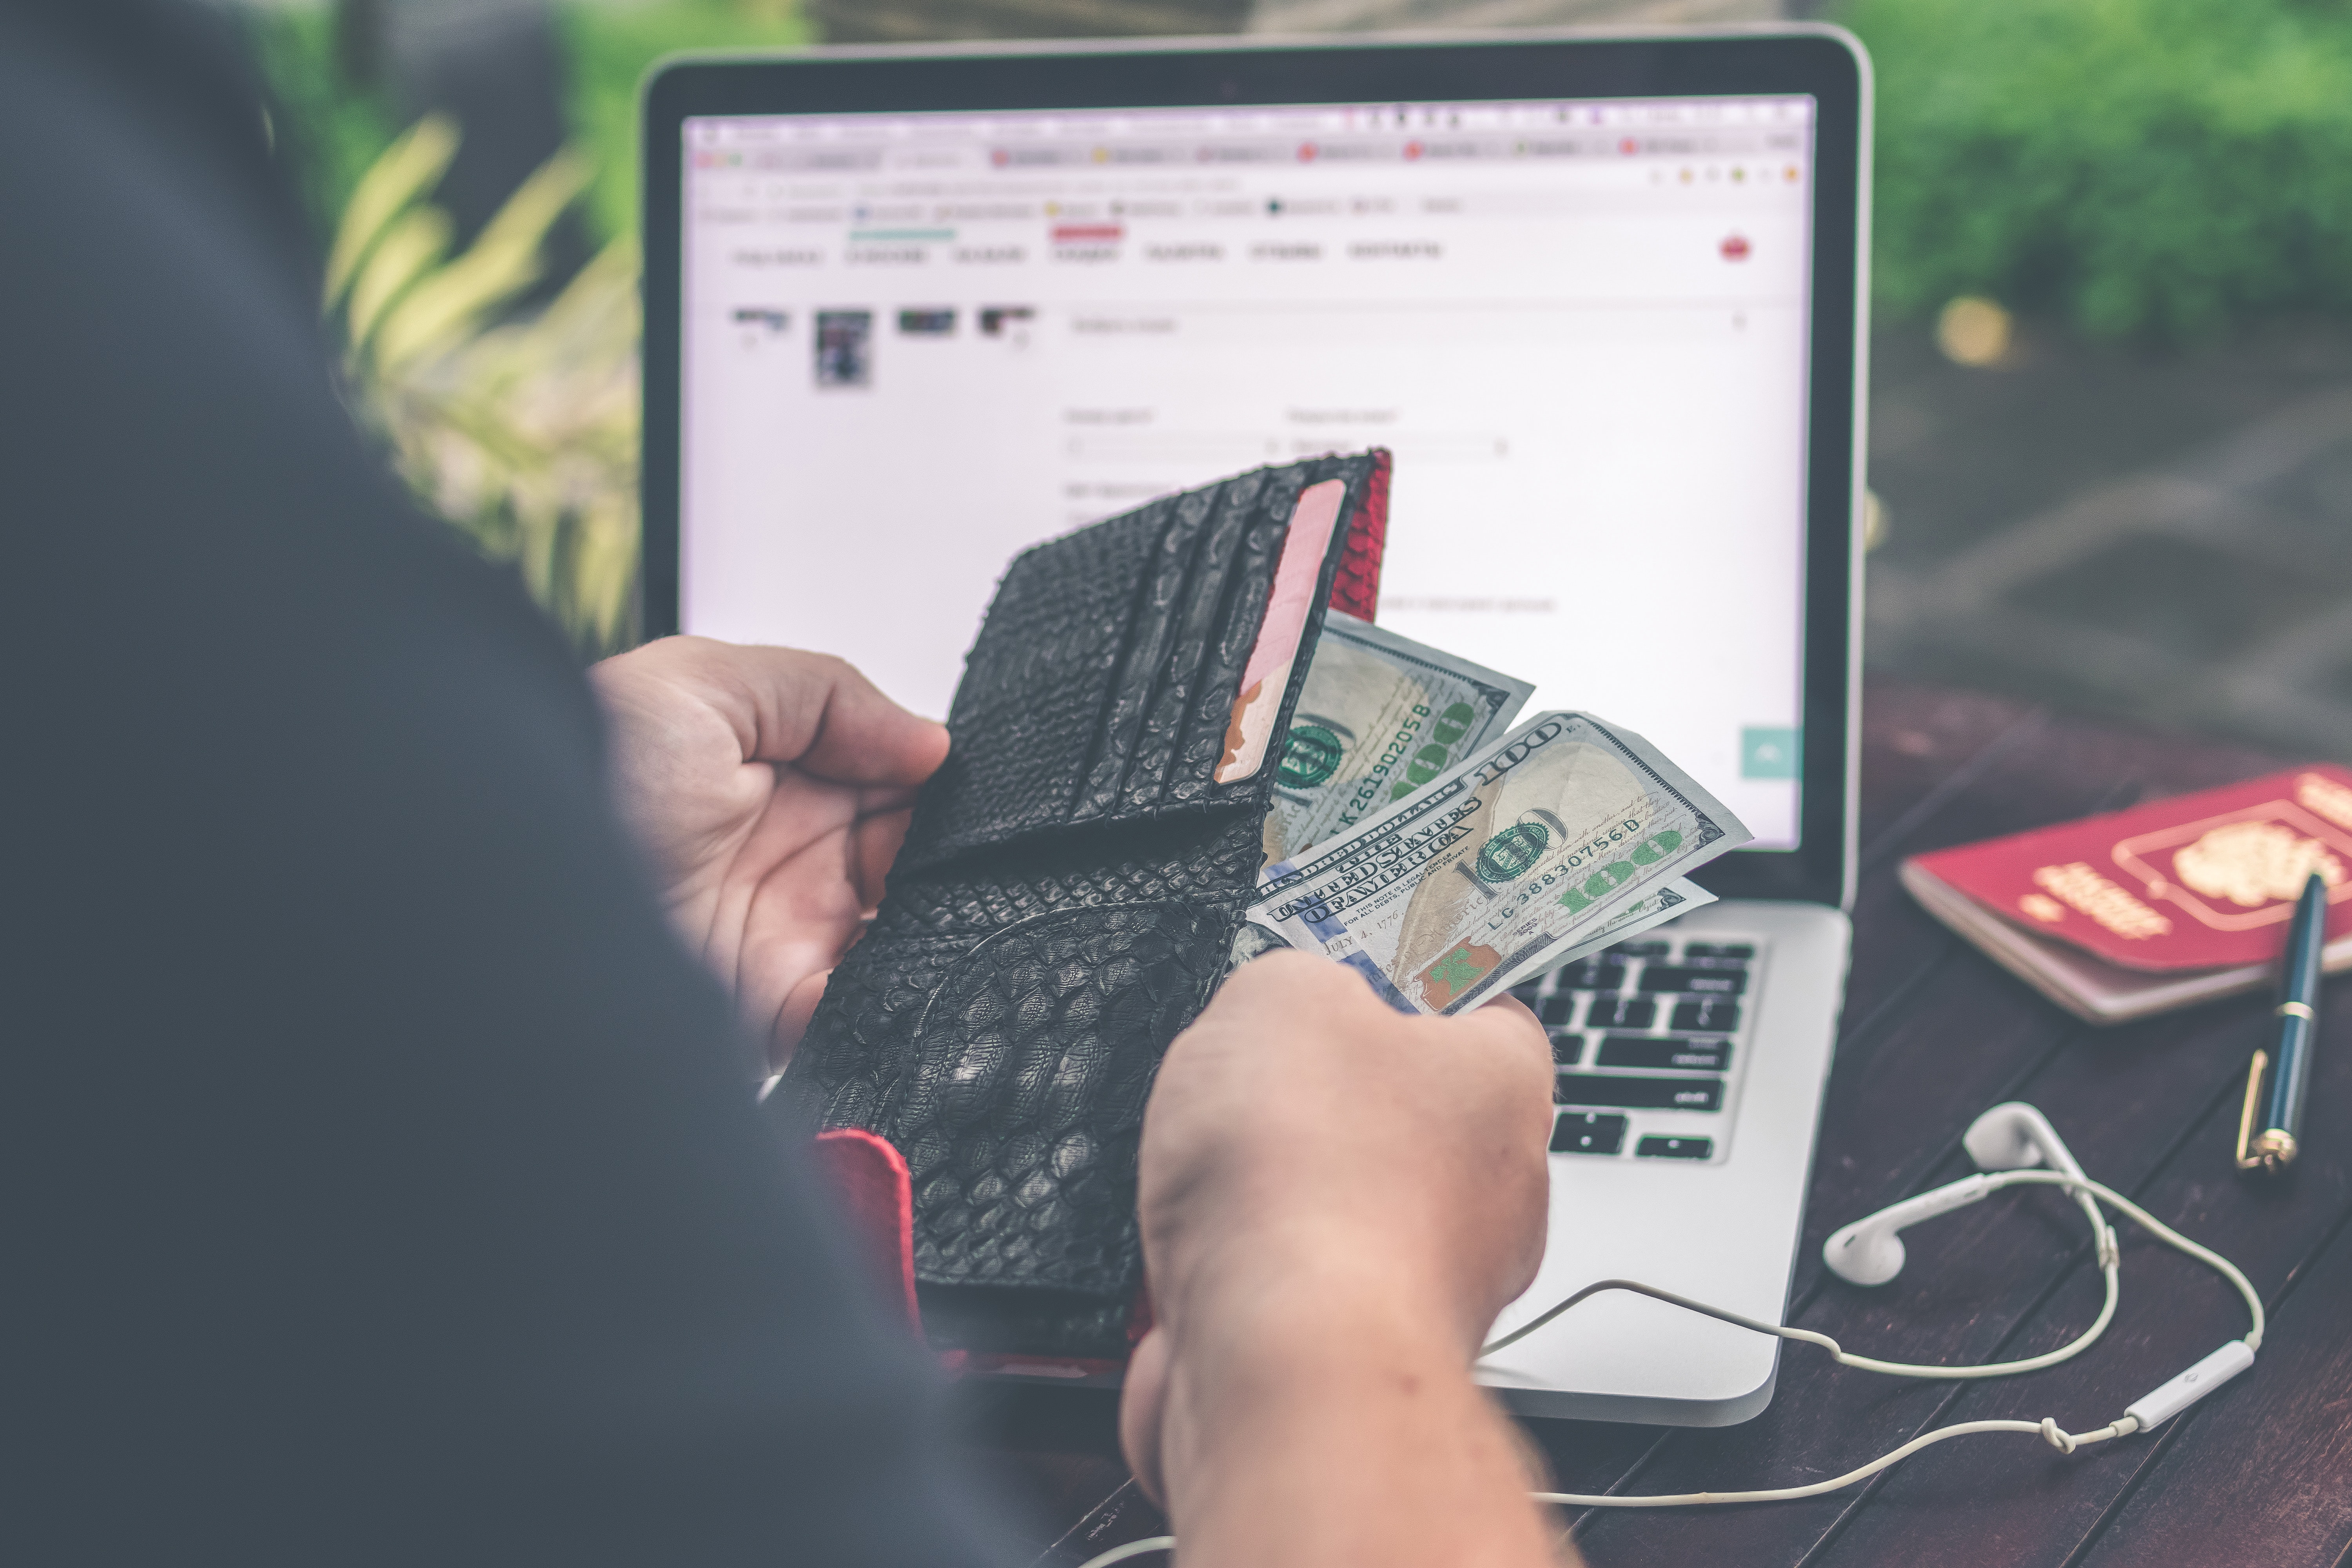 Person Holding 10 Us Dollar Banknote in Front of Gray and Black Laptop Computer, Background, Man, Technology, Screen, HQ Photo